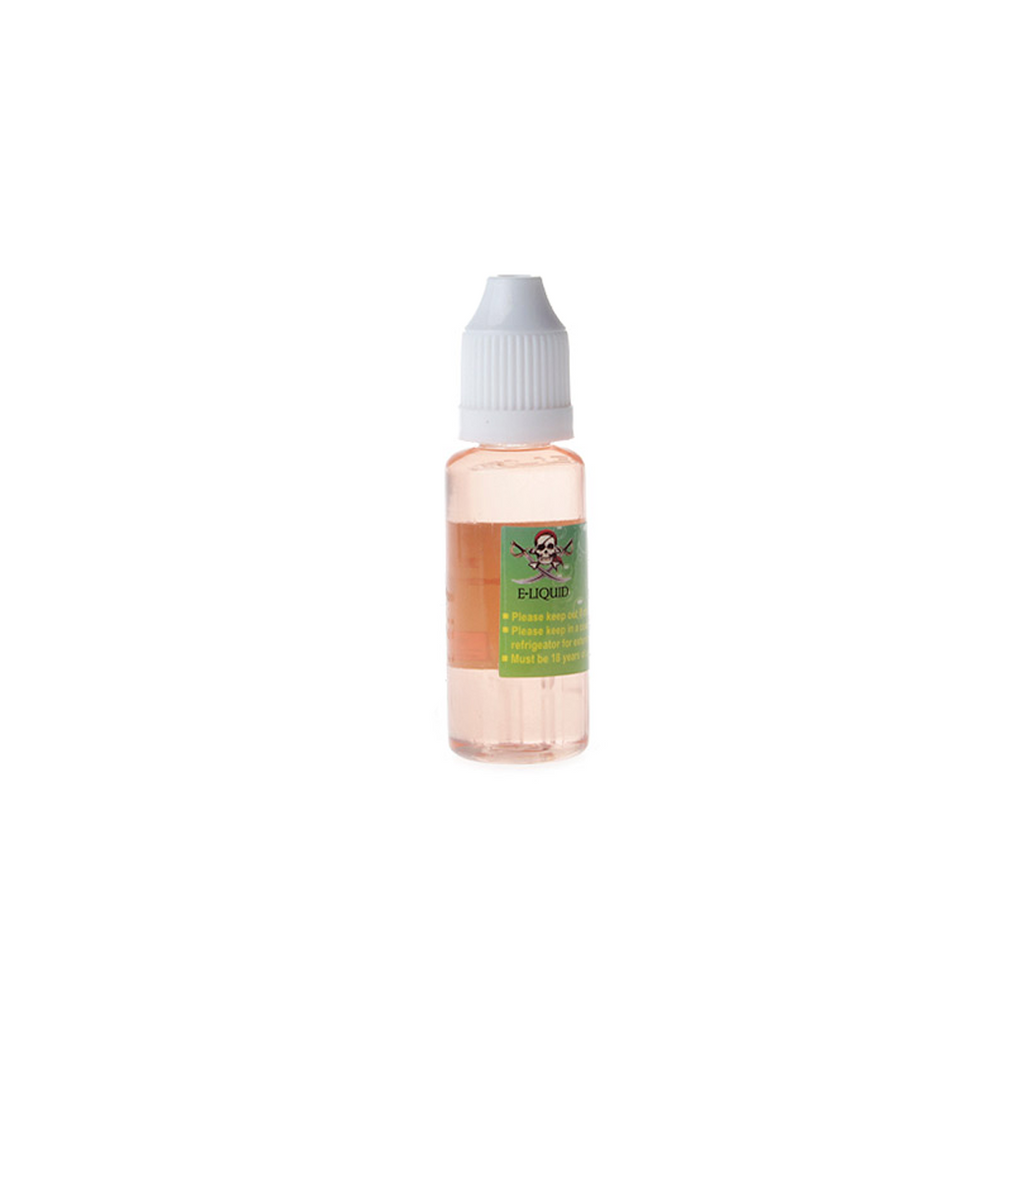 E-liquid Watermelon Vape Juice 20ml-Purplevibe